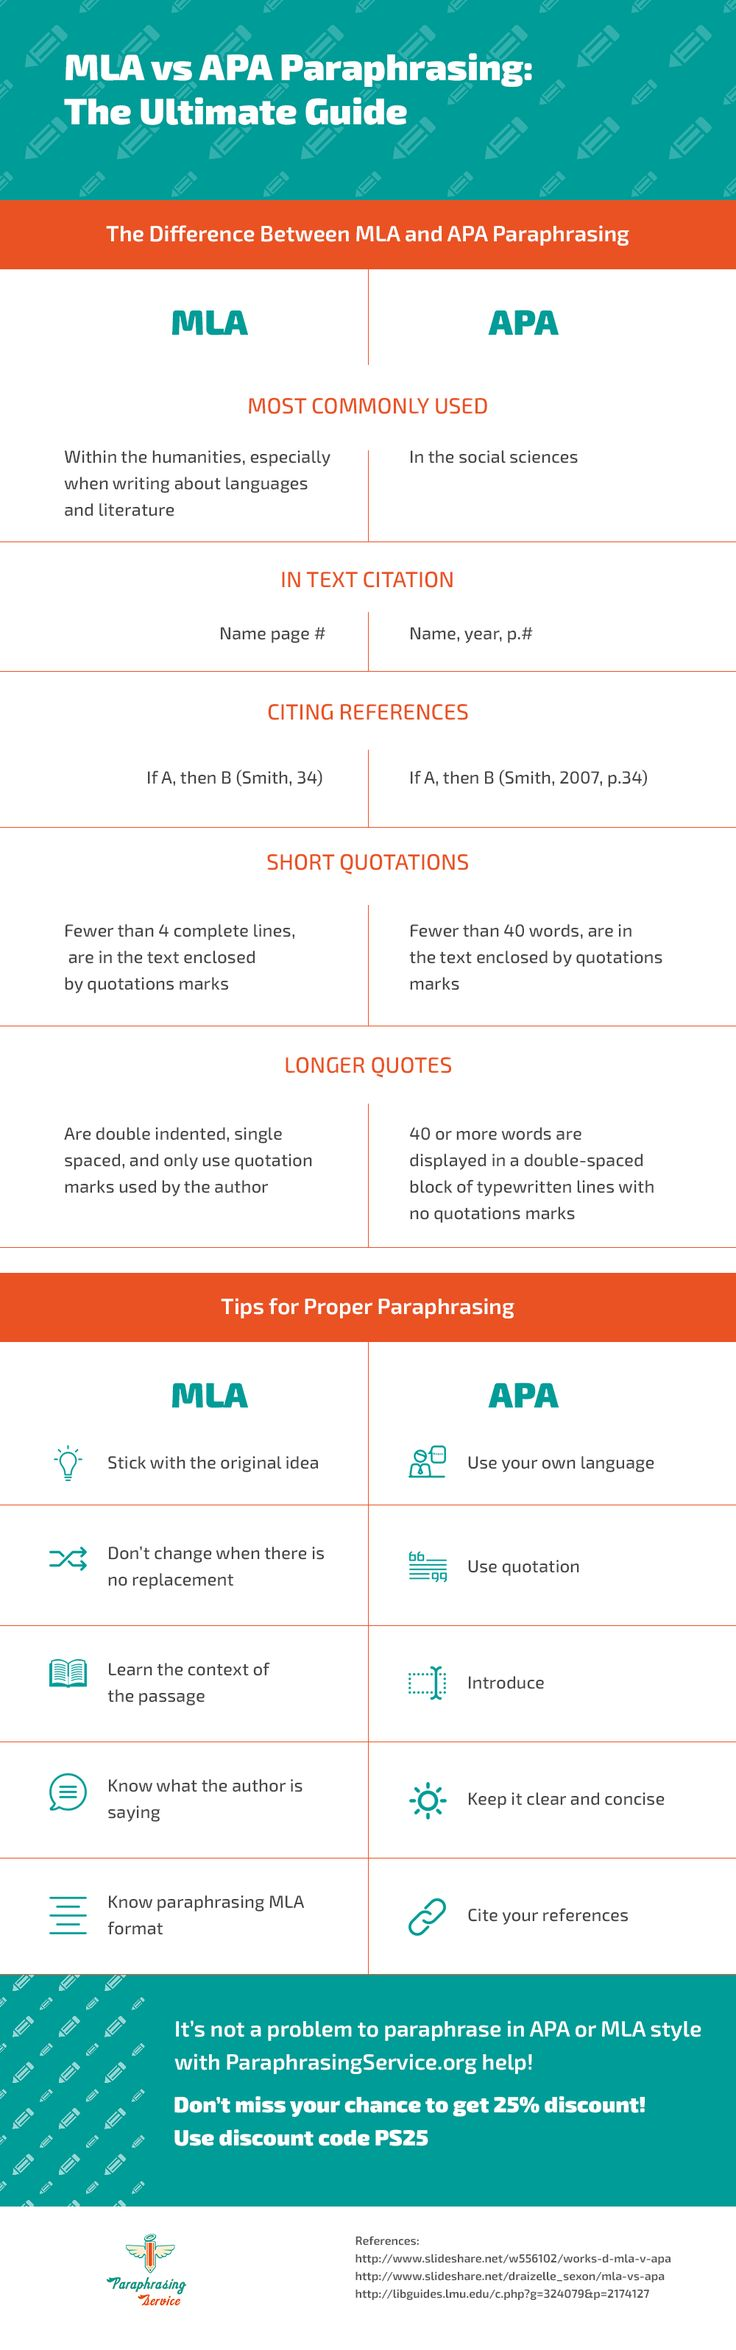 best ideas about mla style mla paris orly and paraphrasingservice org mla vs apa